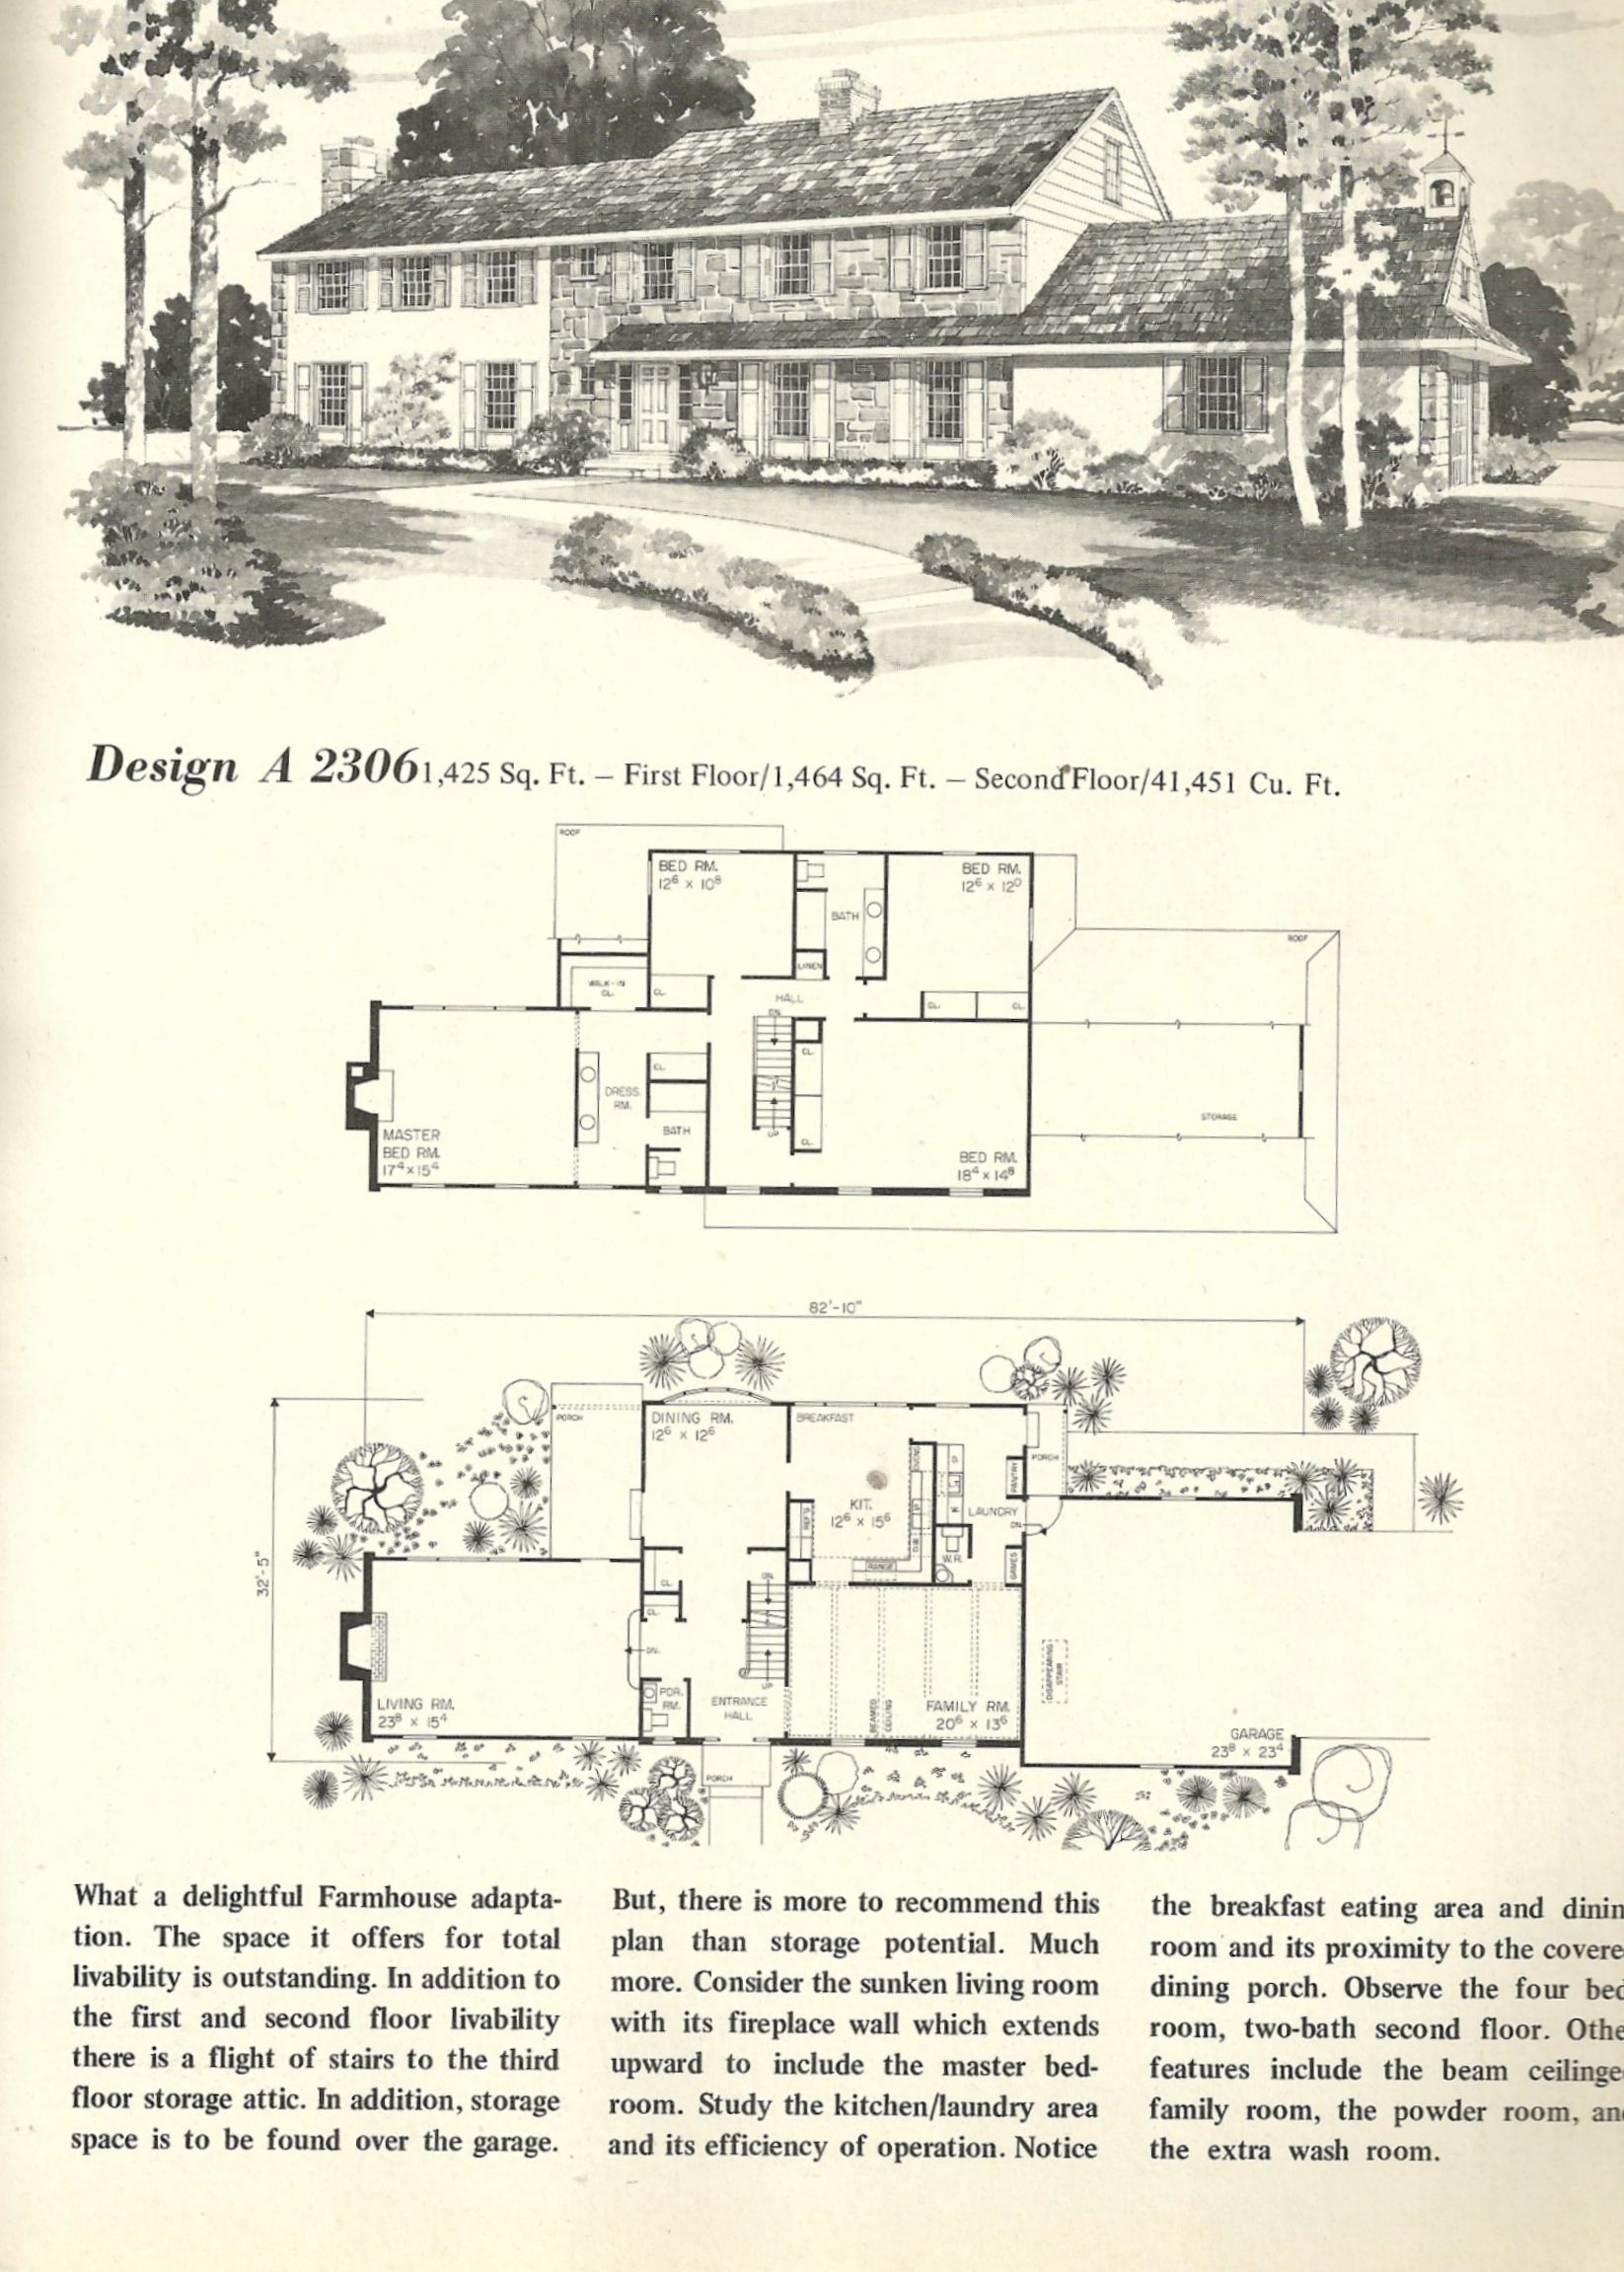 Vintage House Plans, Early Colonial | Architecture | House ... on best one story house plans, classical greek revival house plans, jeffersonian house plans, early colonization of america, early colonial home, sears small house plans, early american home plans, early colonial architecture, early american houses, moorish revival house plans, colonial early american floor plans, early colonial furniture, early colonial art, early colonial flooring, french country house plans, garrison style house plans, early colonial fishing, early colonial bedroom, vintage sears house plans,